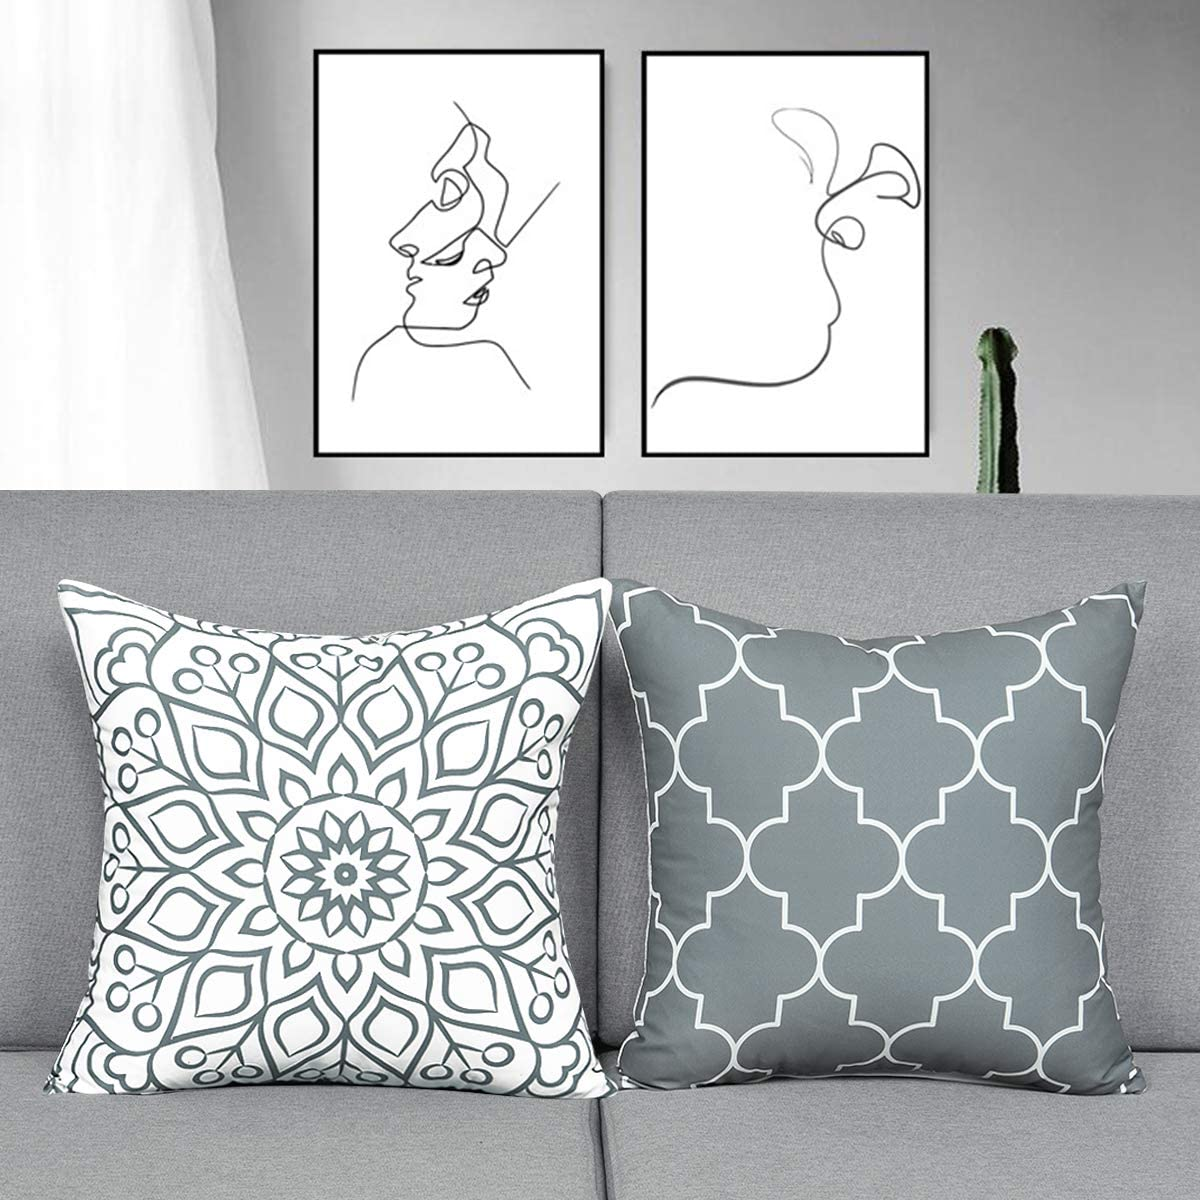 Fascidorm Set of 2 Grey Decorative Pillows with Inserts Modern Throw Pillows Cushion Pillows for Bed Sofa Chair Car 18 x 18 Inch